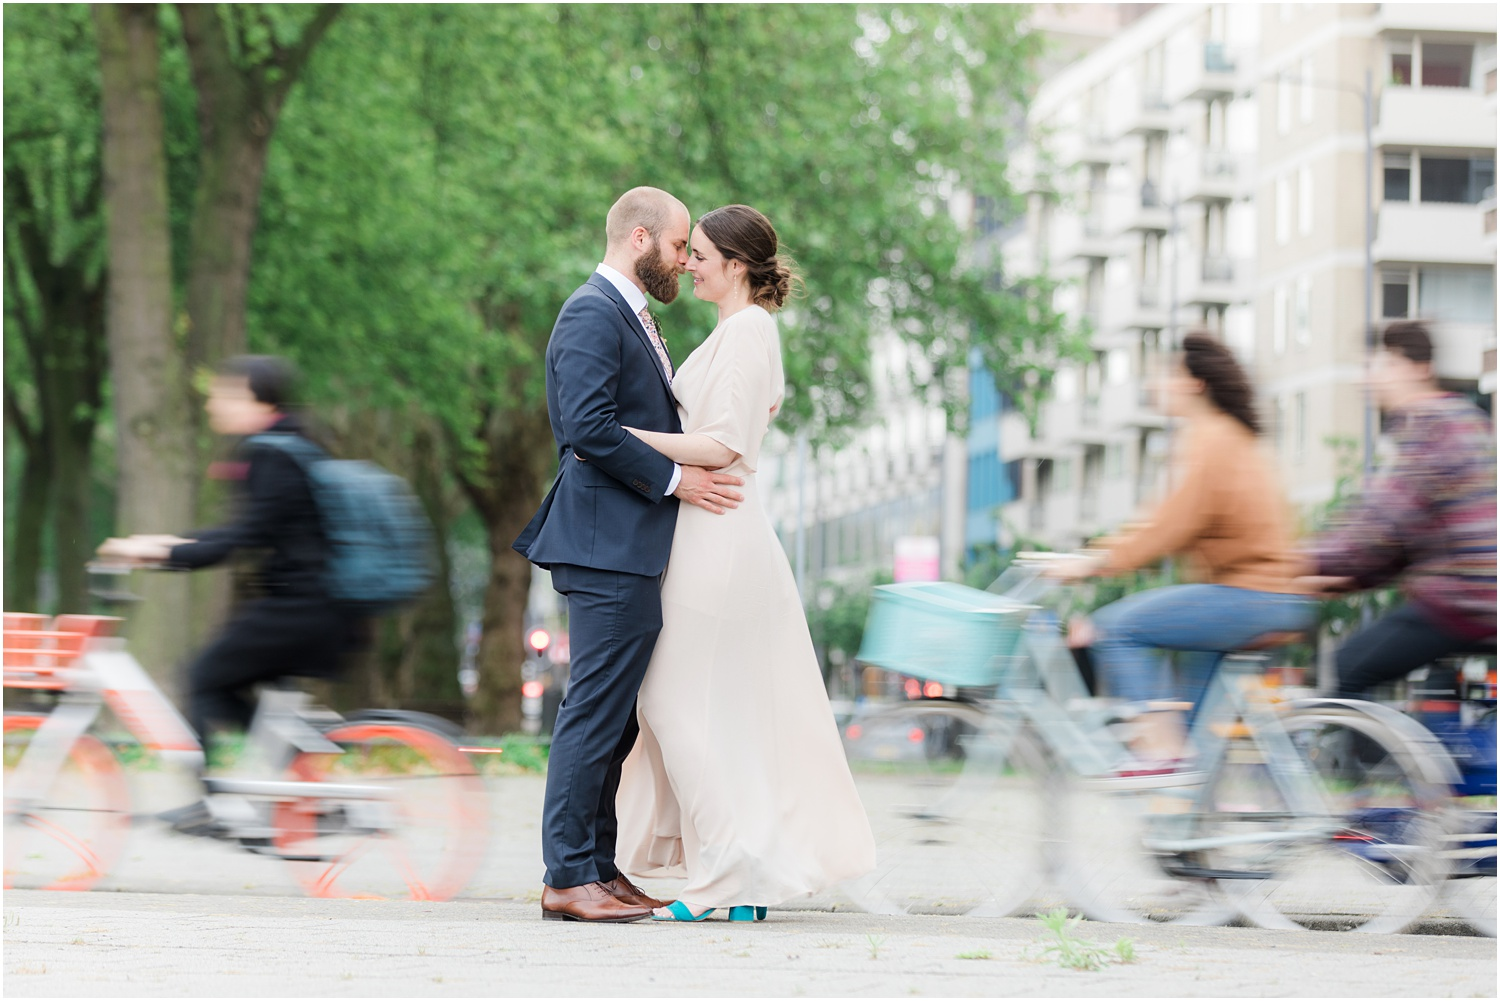 Romantic wedding photo with moving bicycles in Rotterdam